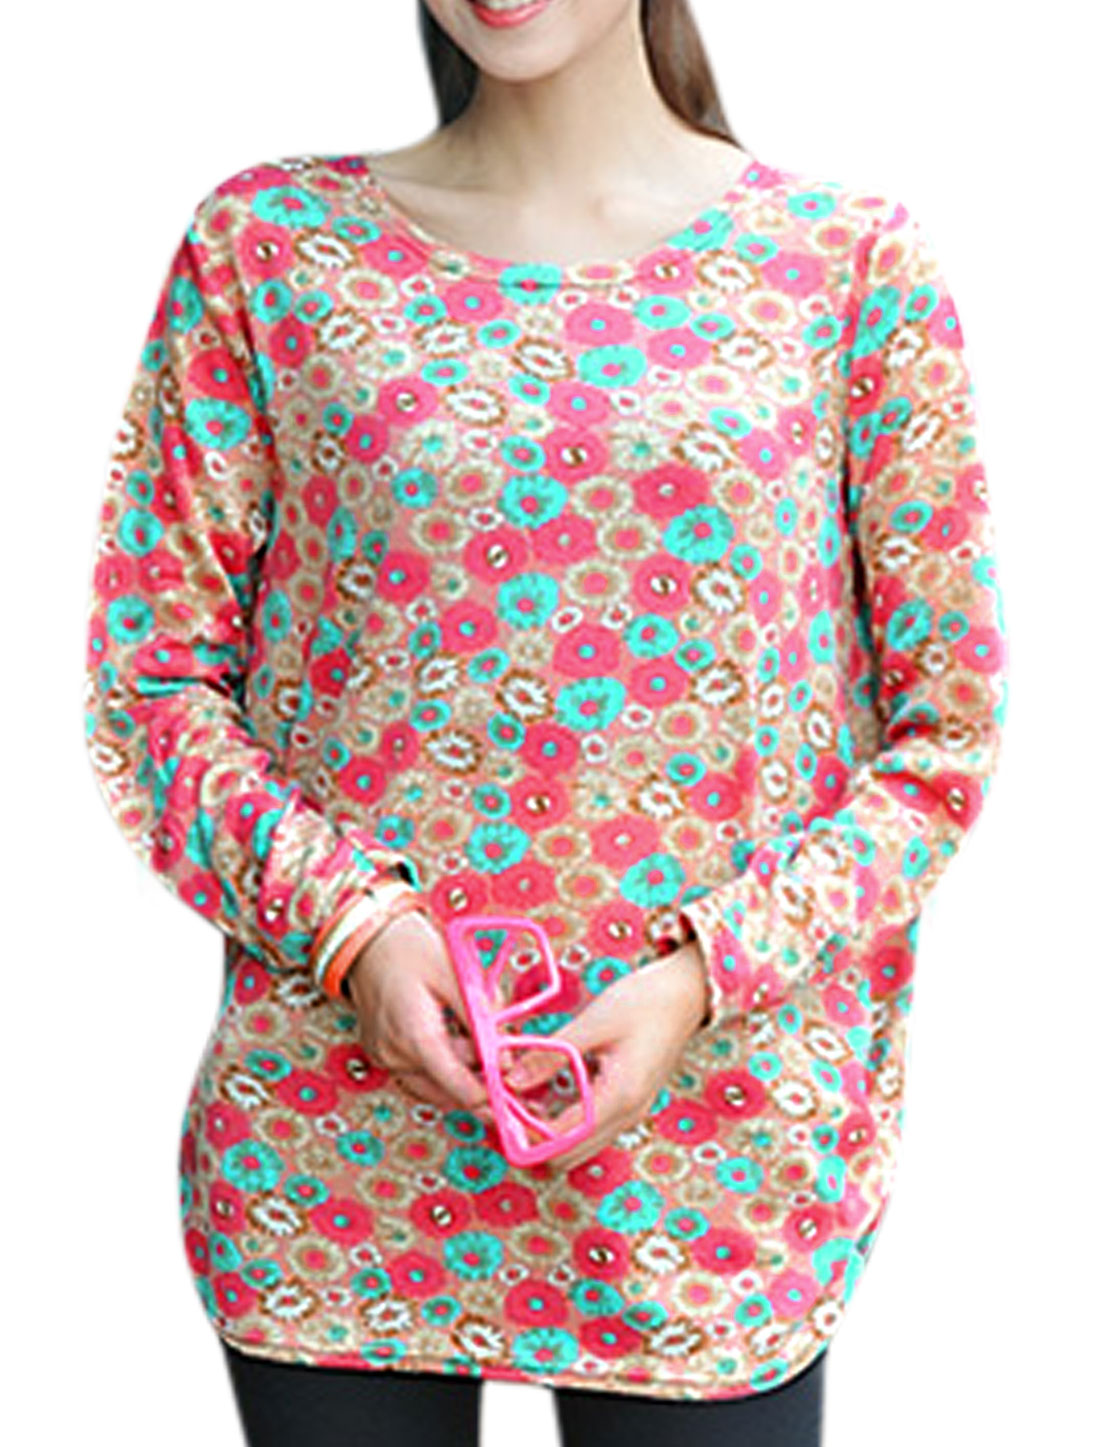 Ladies Round Neck Floral Prints Pullover Leisure Tunic Top Multi Color S